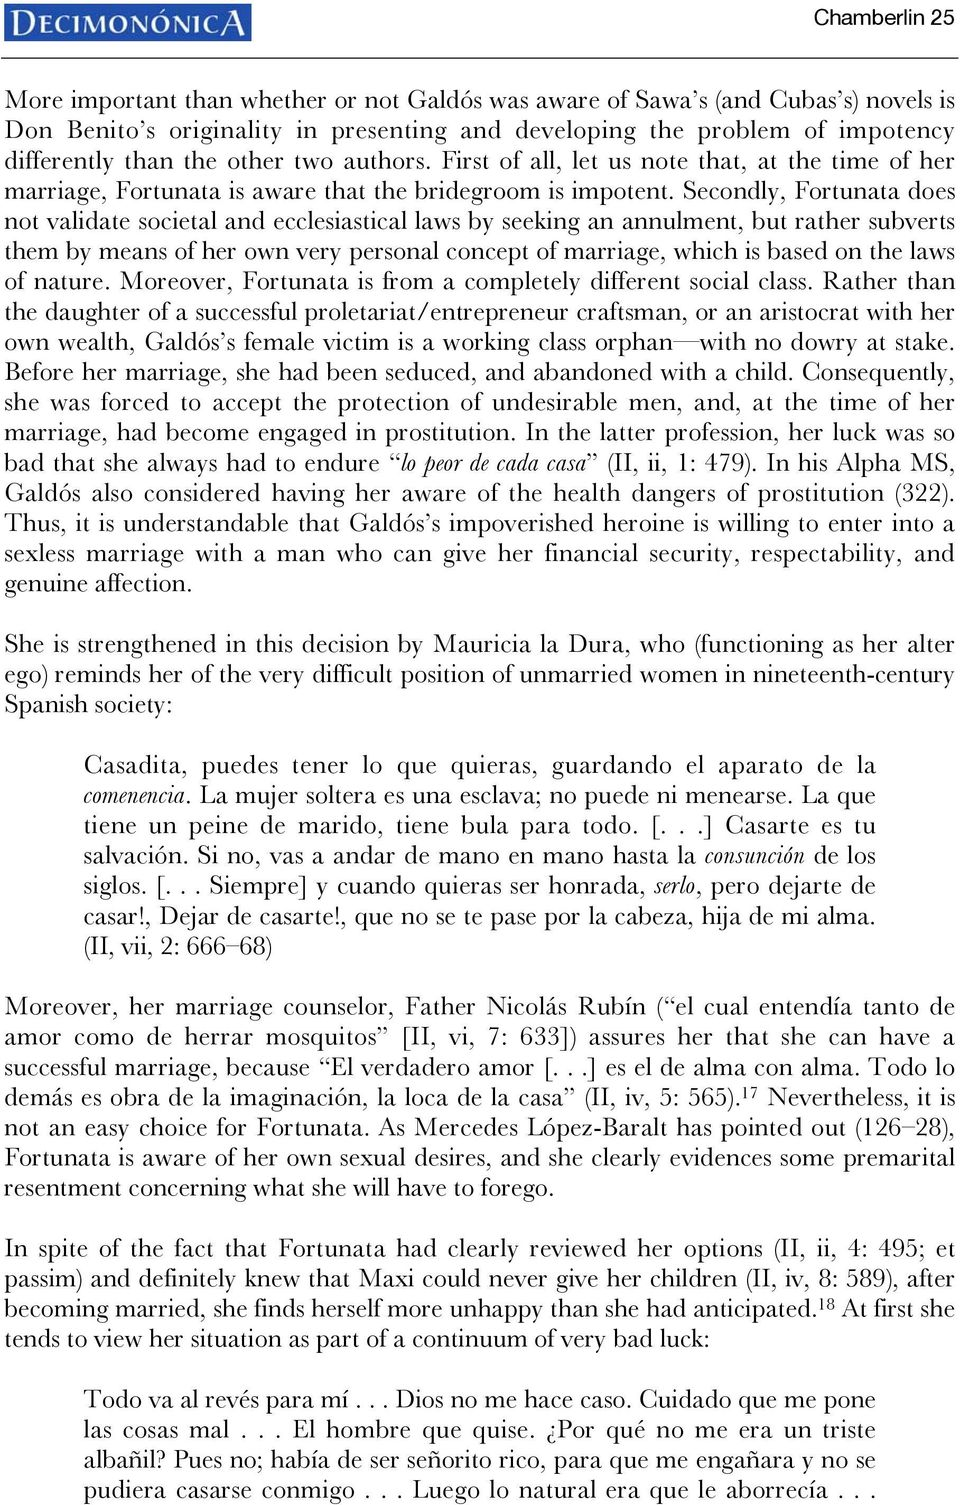 Secondly, Fortunata does not validate societal and ecclesiastical laws by seeking an annulment, but rather subverts them by means of her own very personal concept of marriage, which is based on the